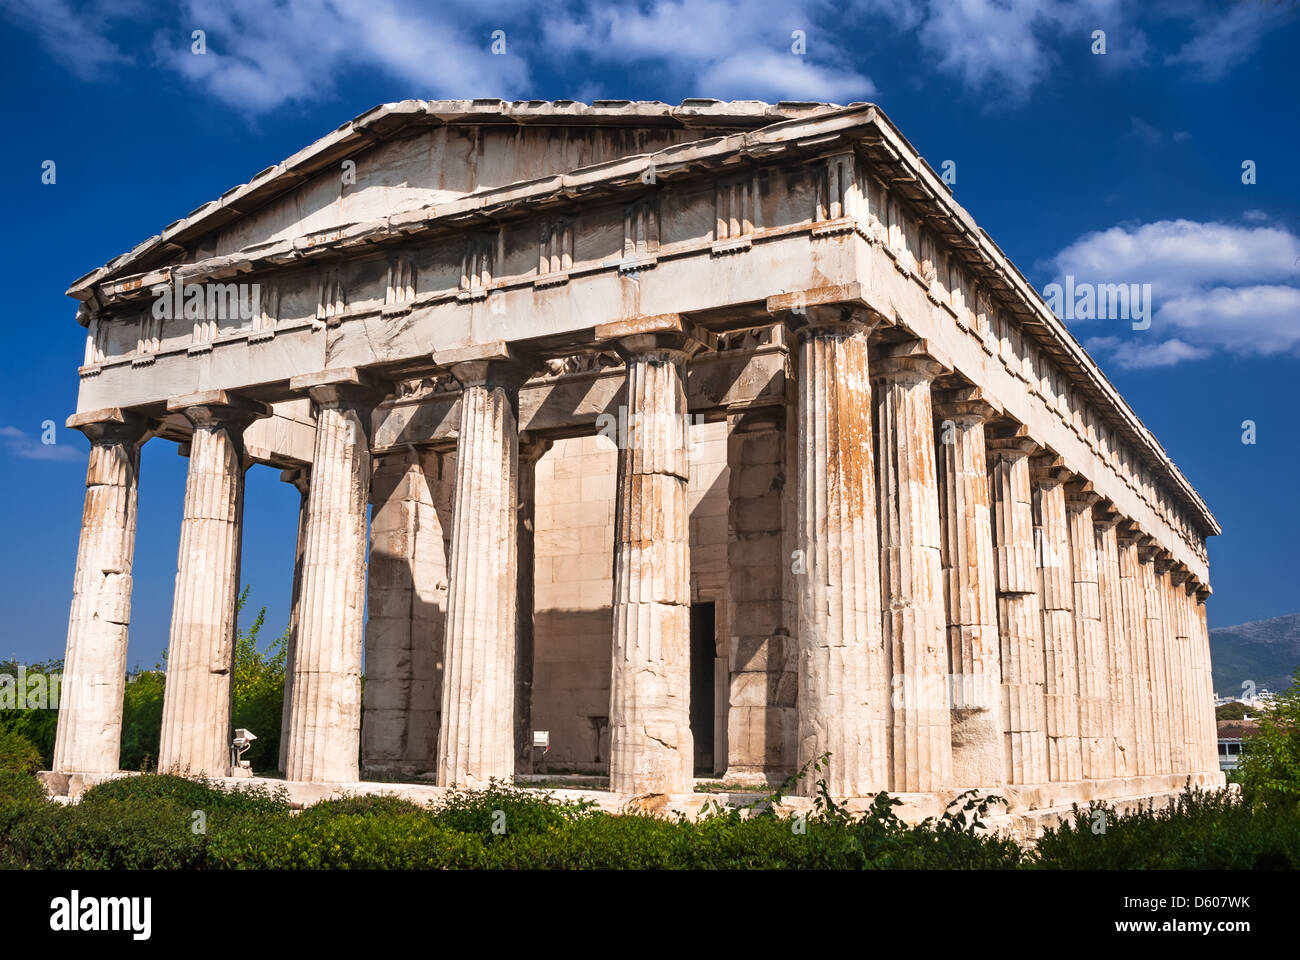 Temple of Hephaestus, is the best preserved ancient Greek temple, built in 415 BC. - Stock Image